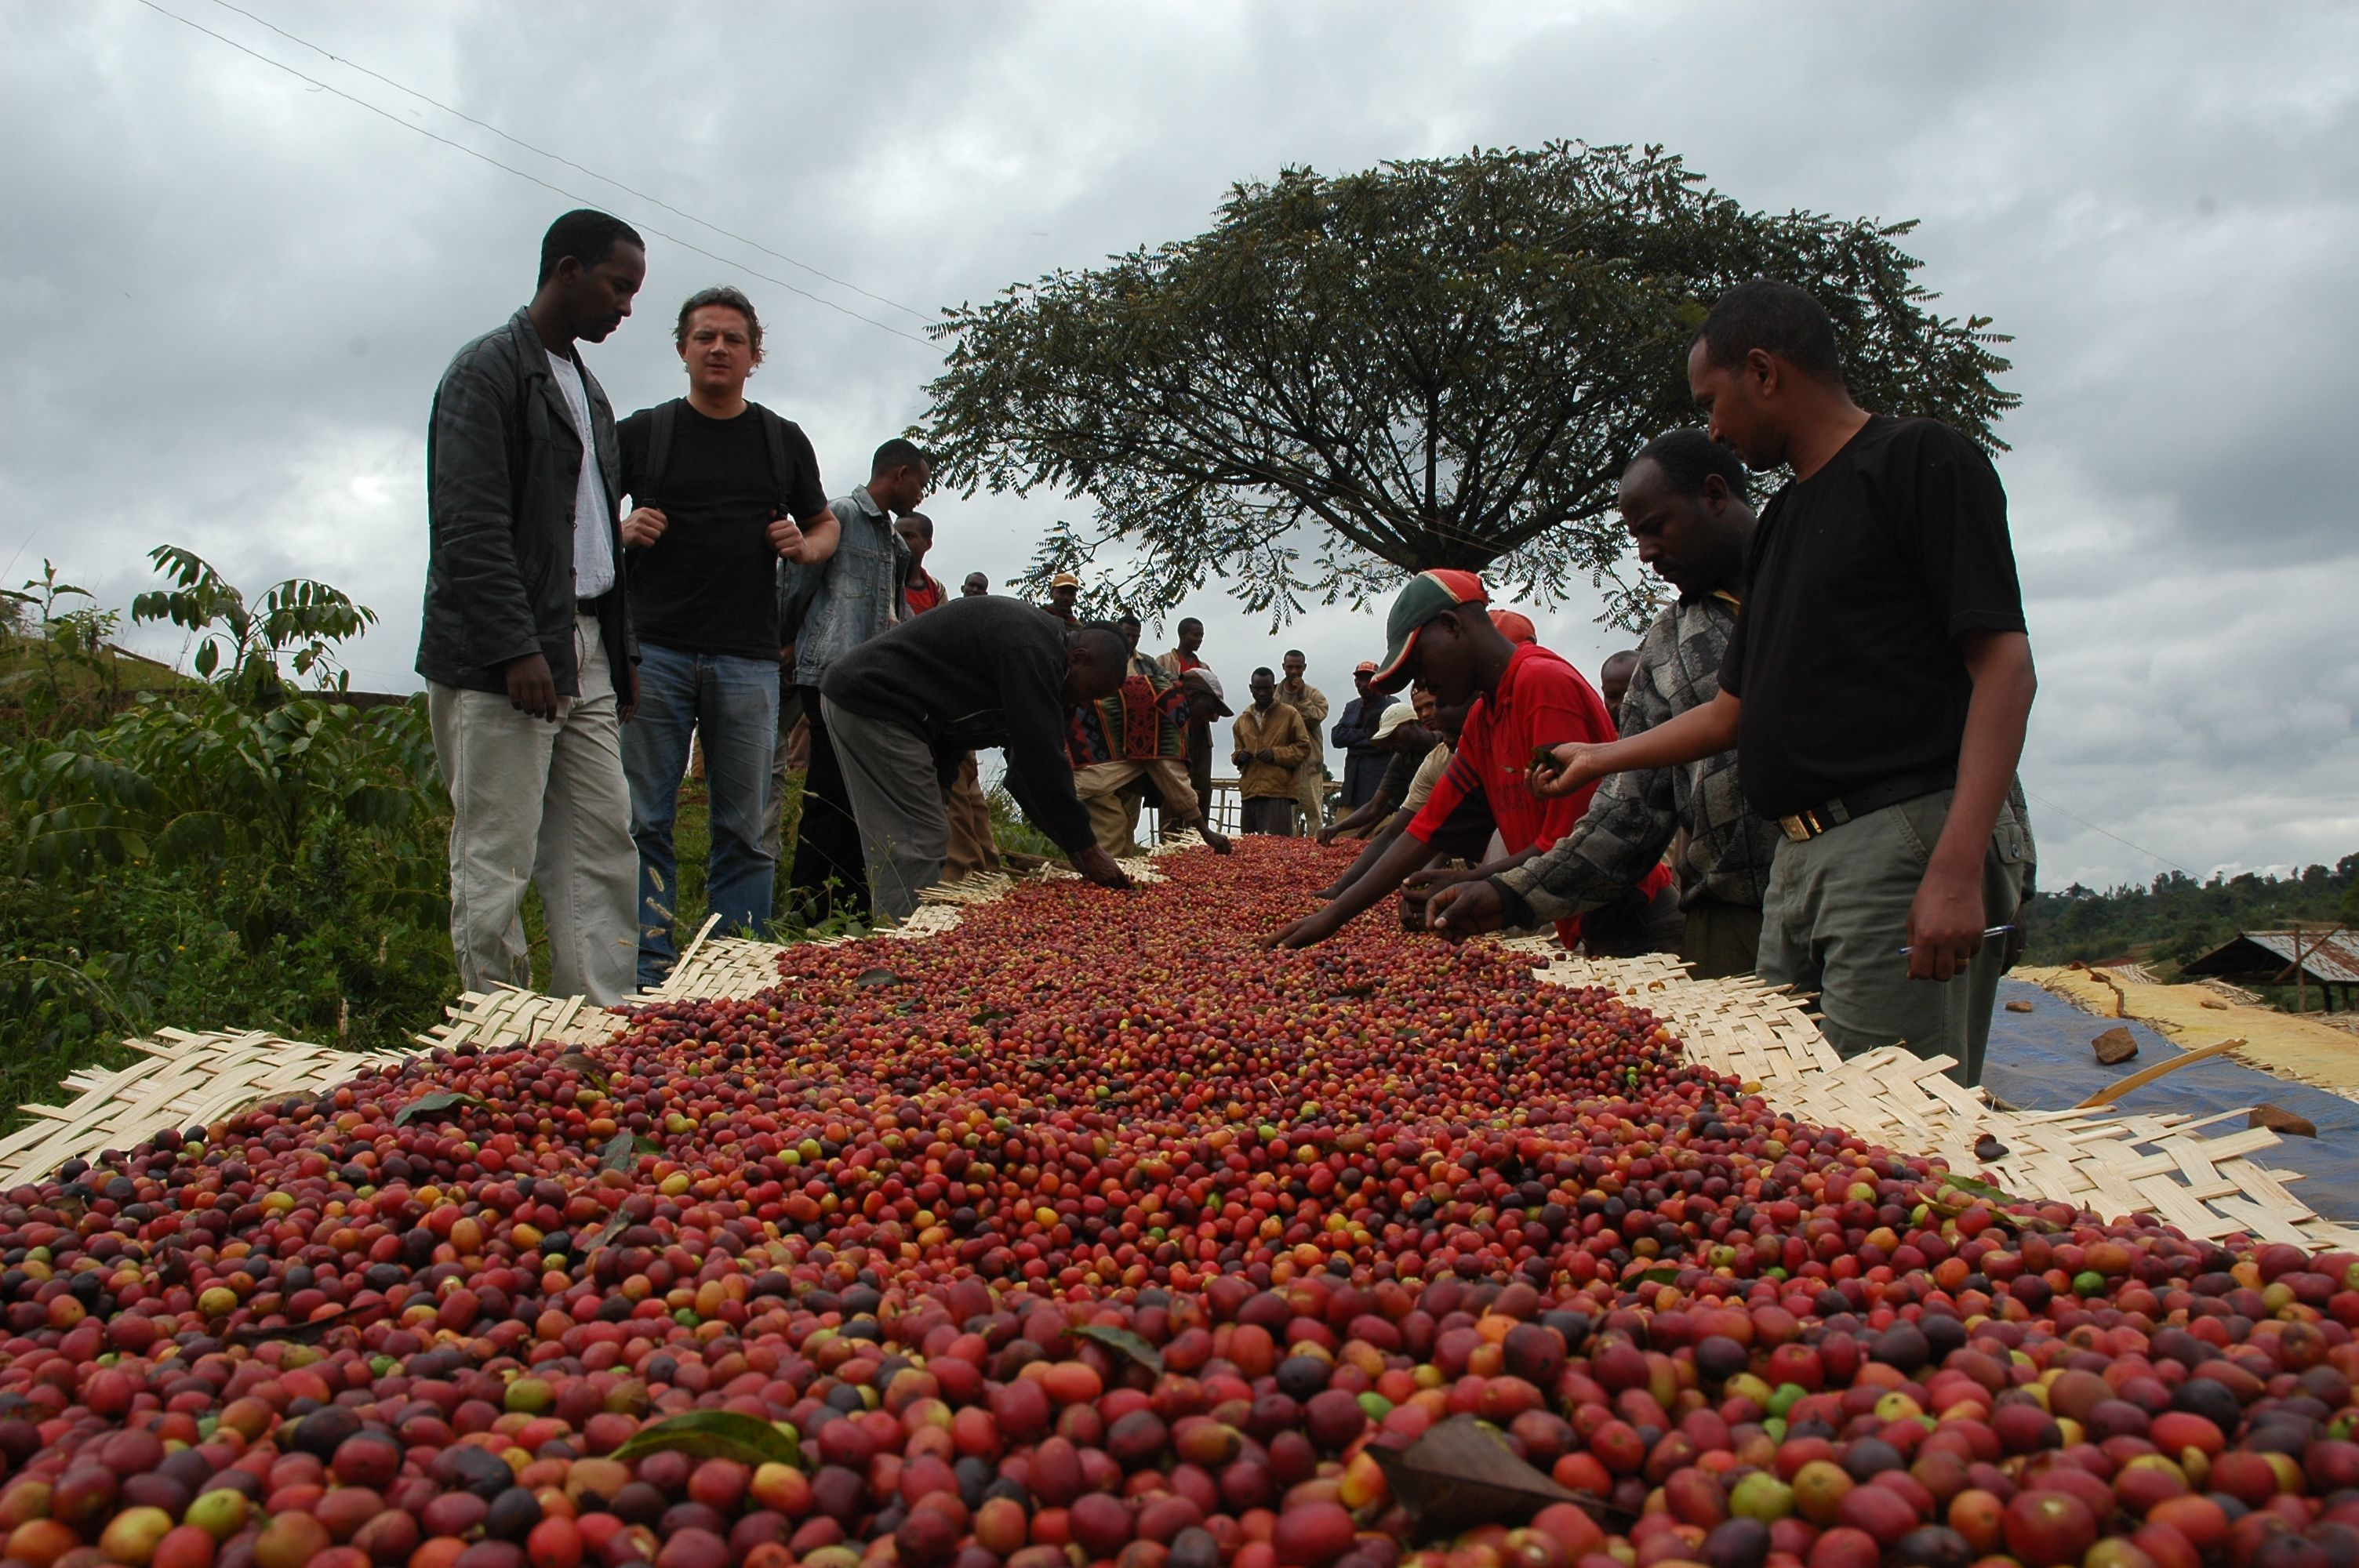 coffee consumption and production in ethiopia The earliest credible evidence of either coffee drinking or knowledge of the   ethiopia truly has the potential to increase coffee production and.